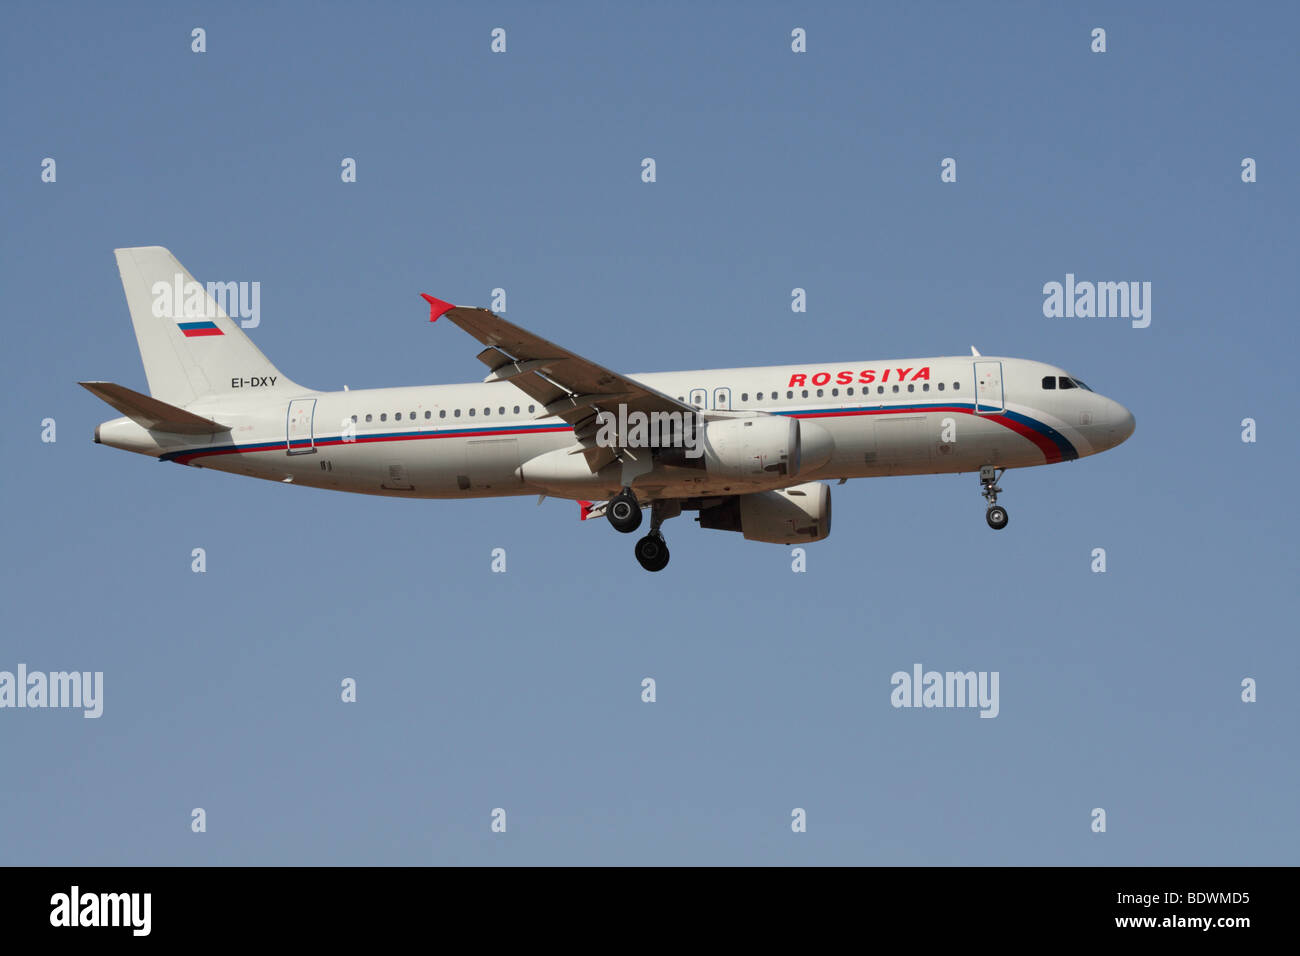 Rossiya Airlines Airbus A320 commercial passenger jet plane on approach - Stock Image